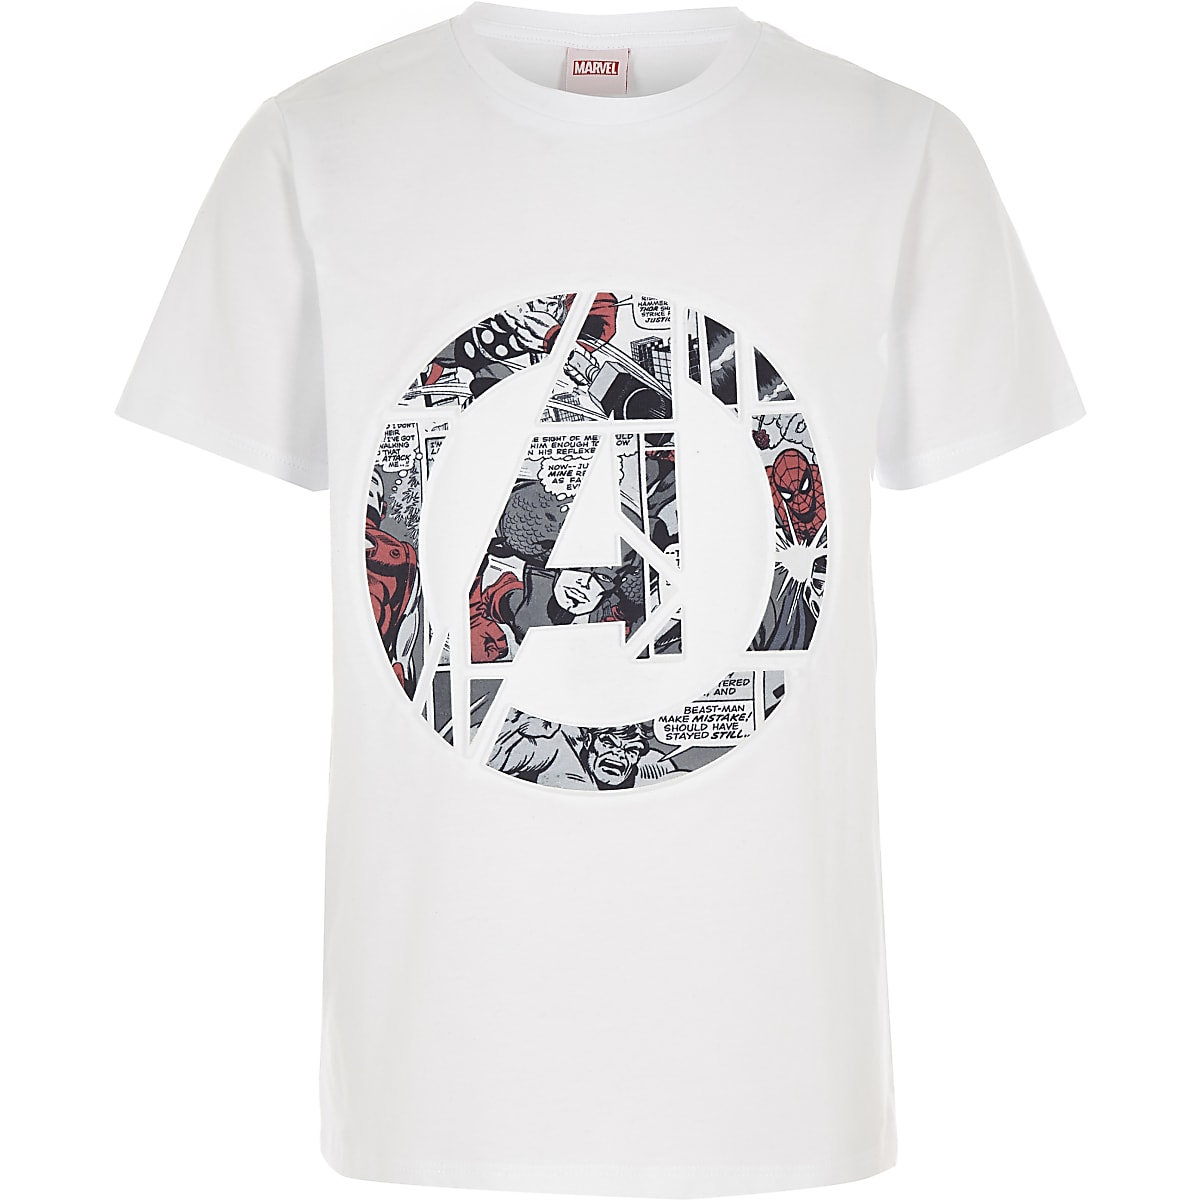 Boys white Marvel Avengers T-shirt